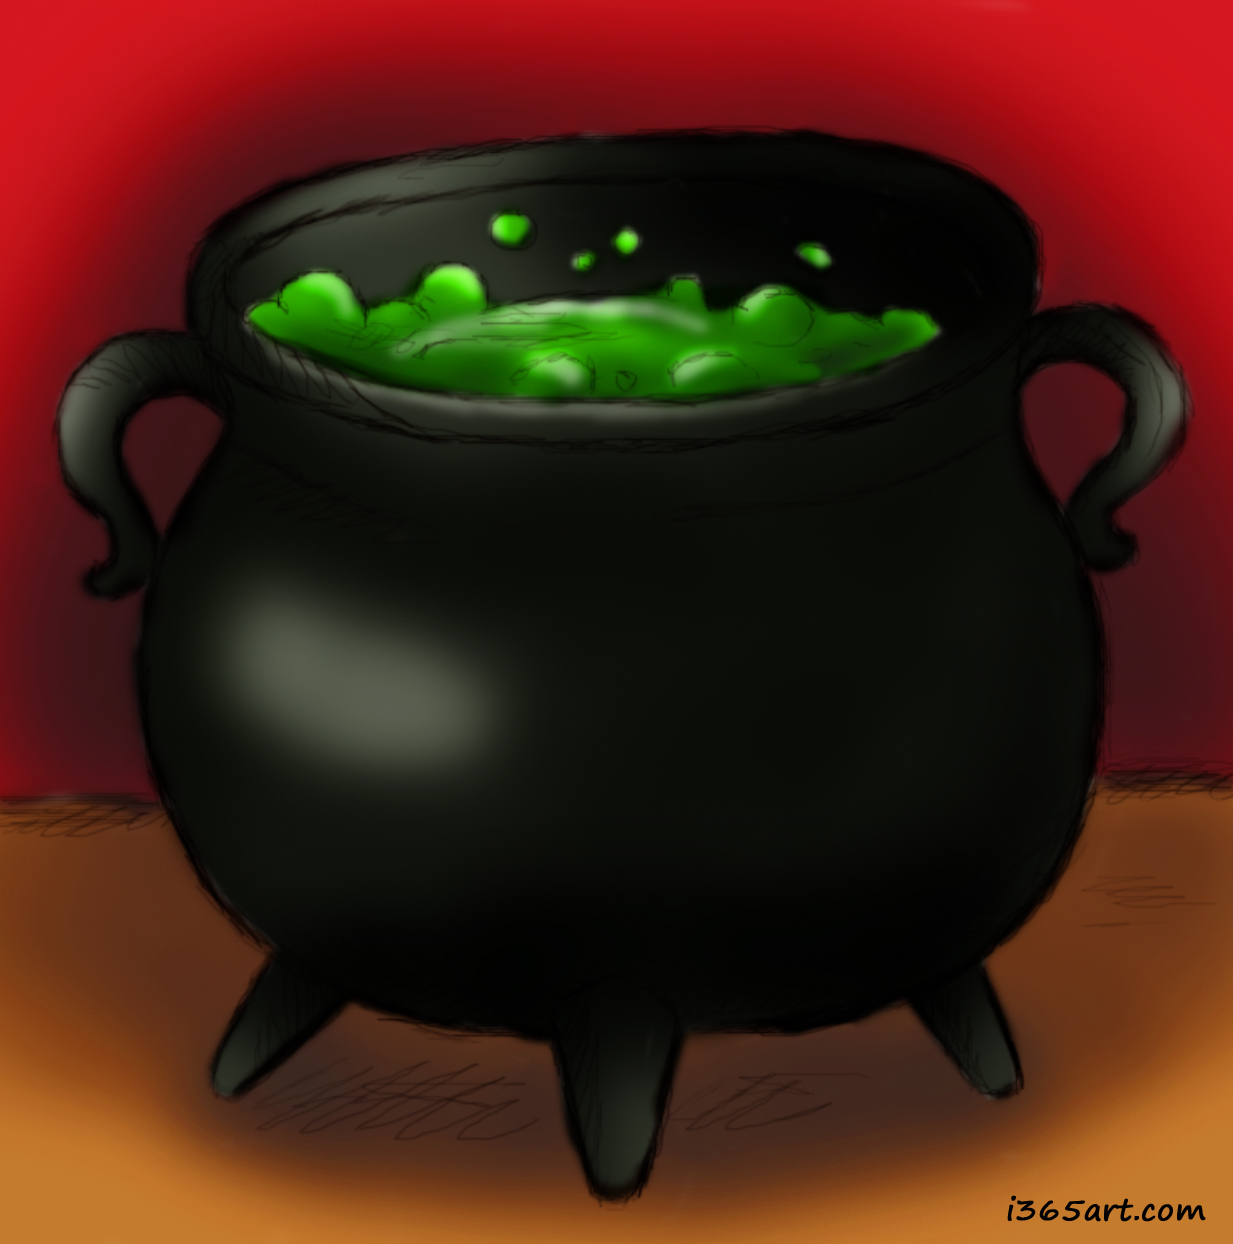 Day #210 Haunted Cauldron Illustration | I 365 Art